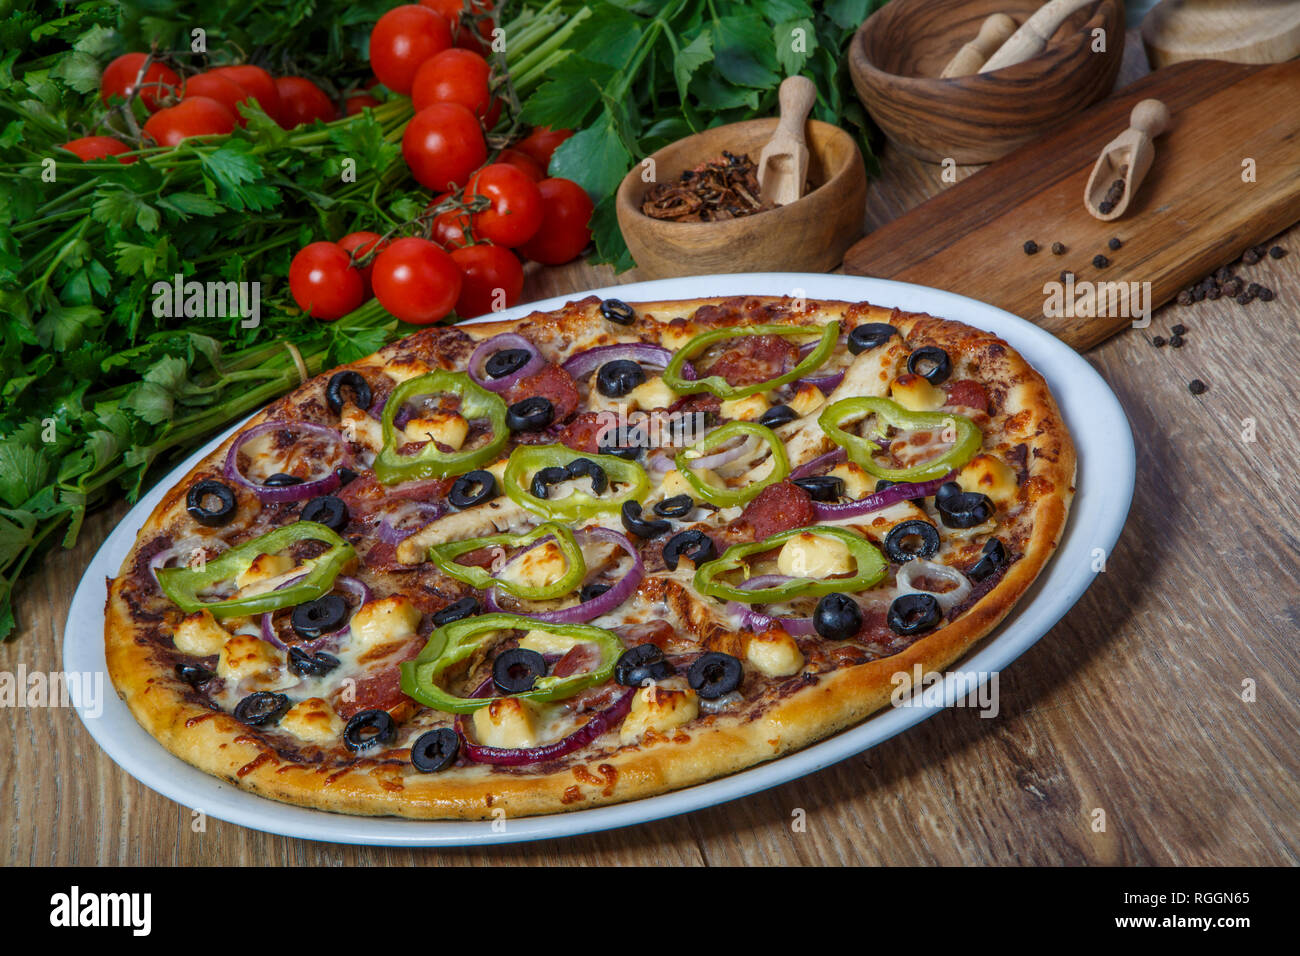 delicious pizza, glass of beer vegetables and spices on wooden table. Top view Stock Photo